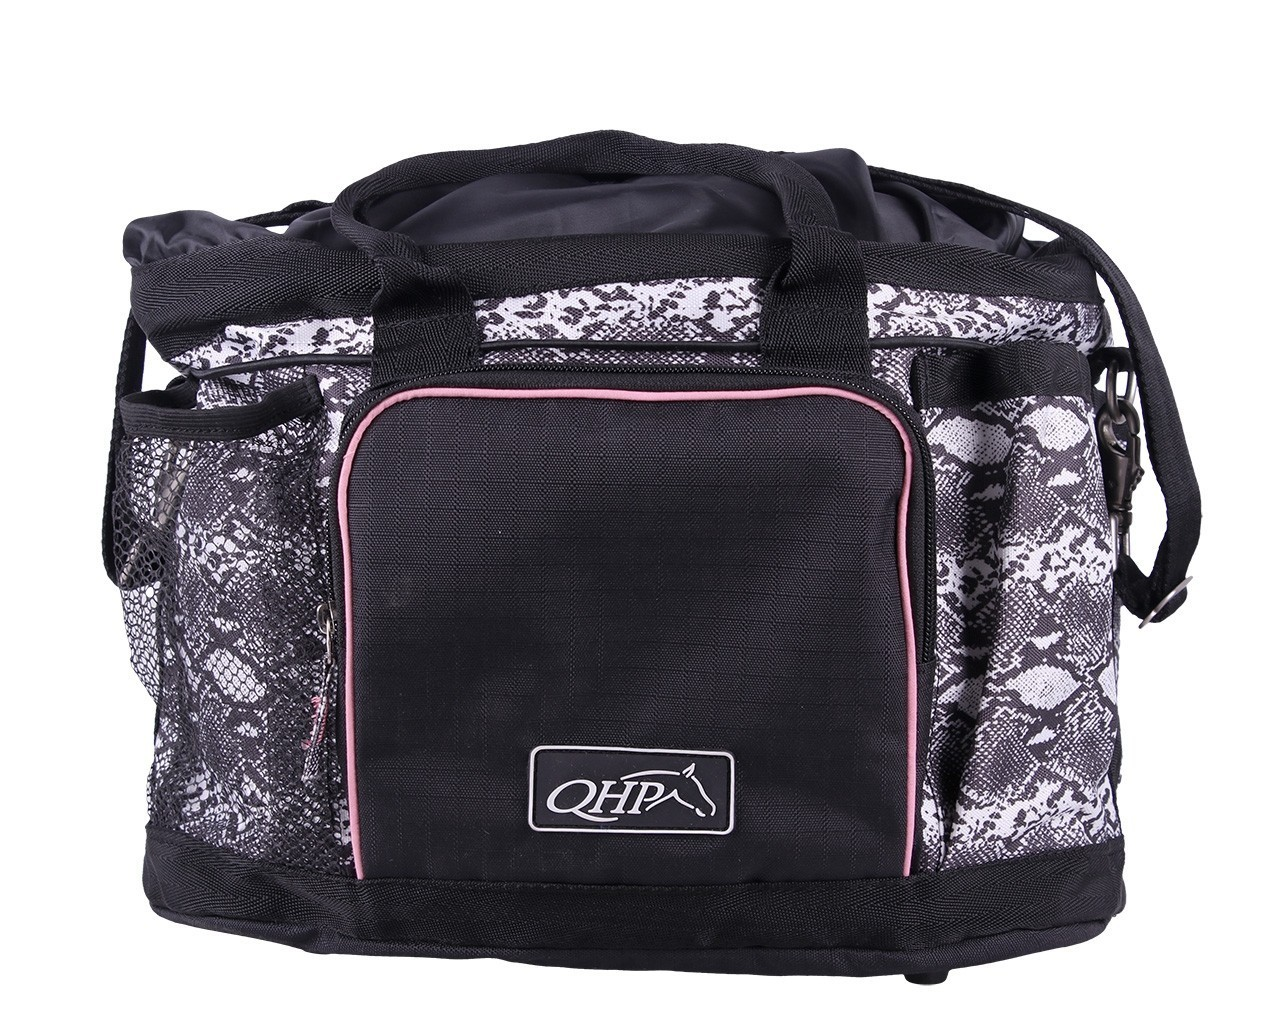 QHP Putztasche Collection